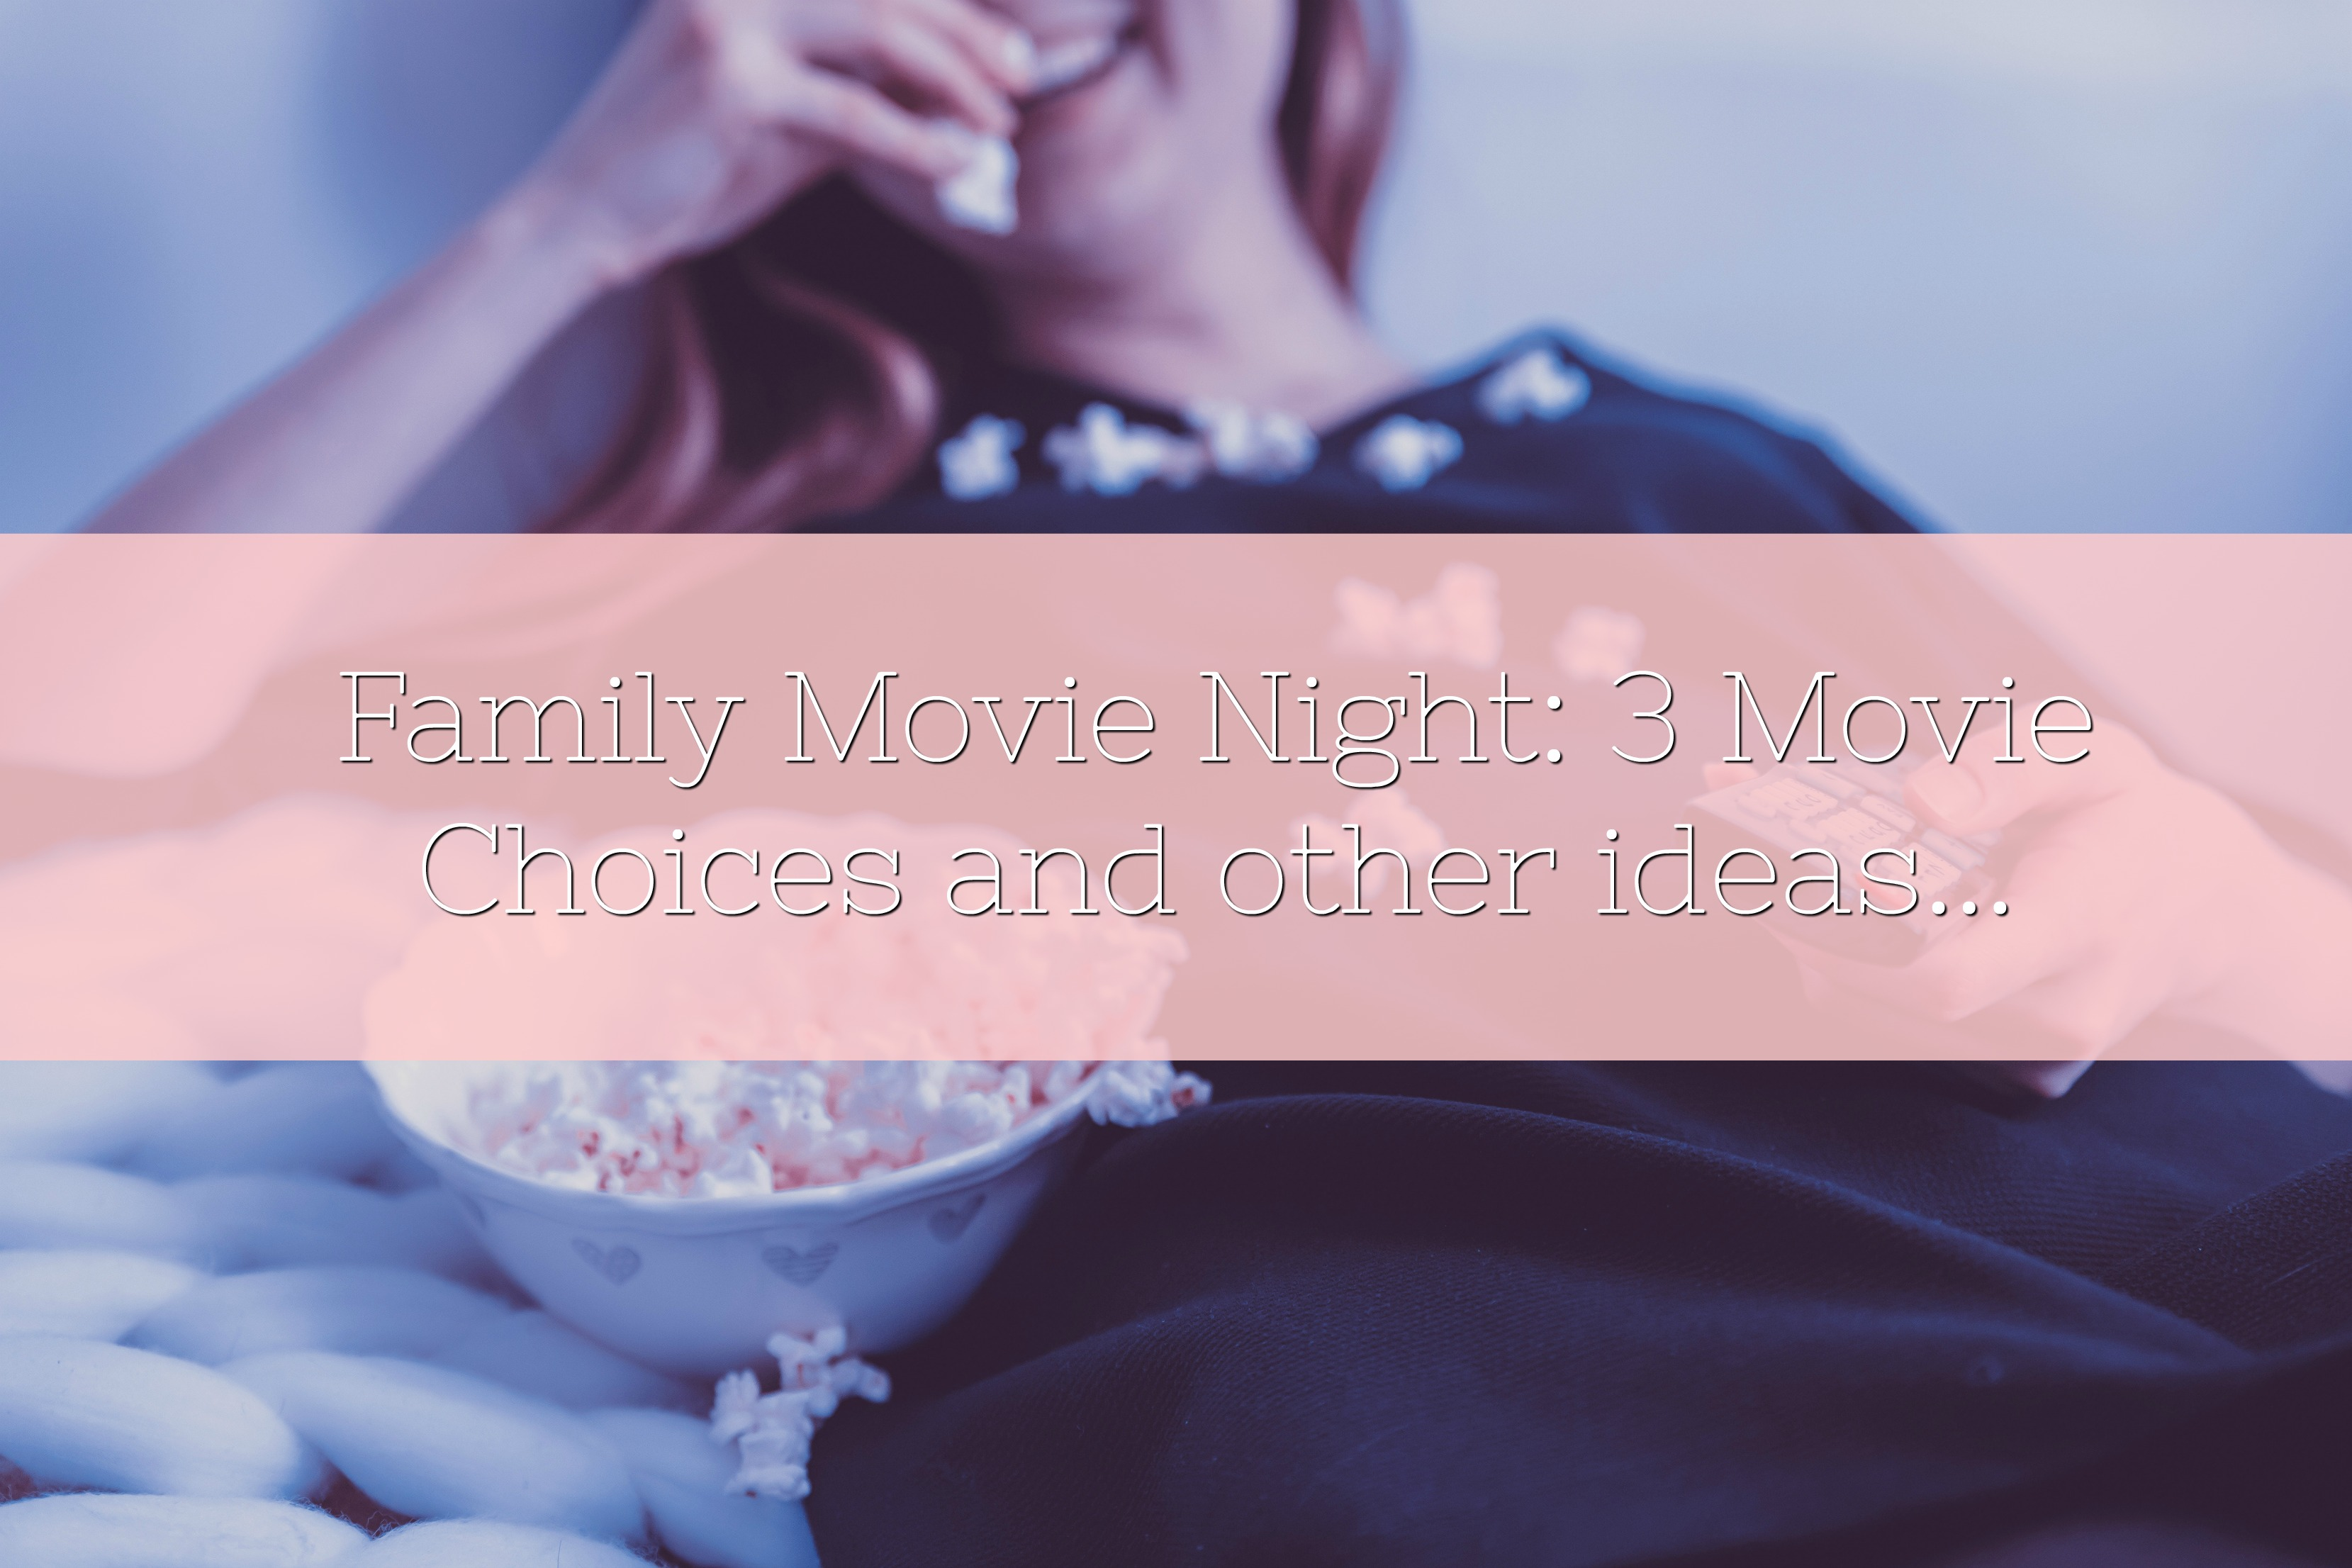 Family Movie Night: 3 Movie Choices and other ideas...